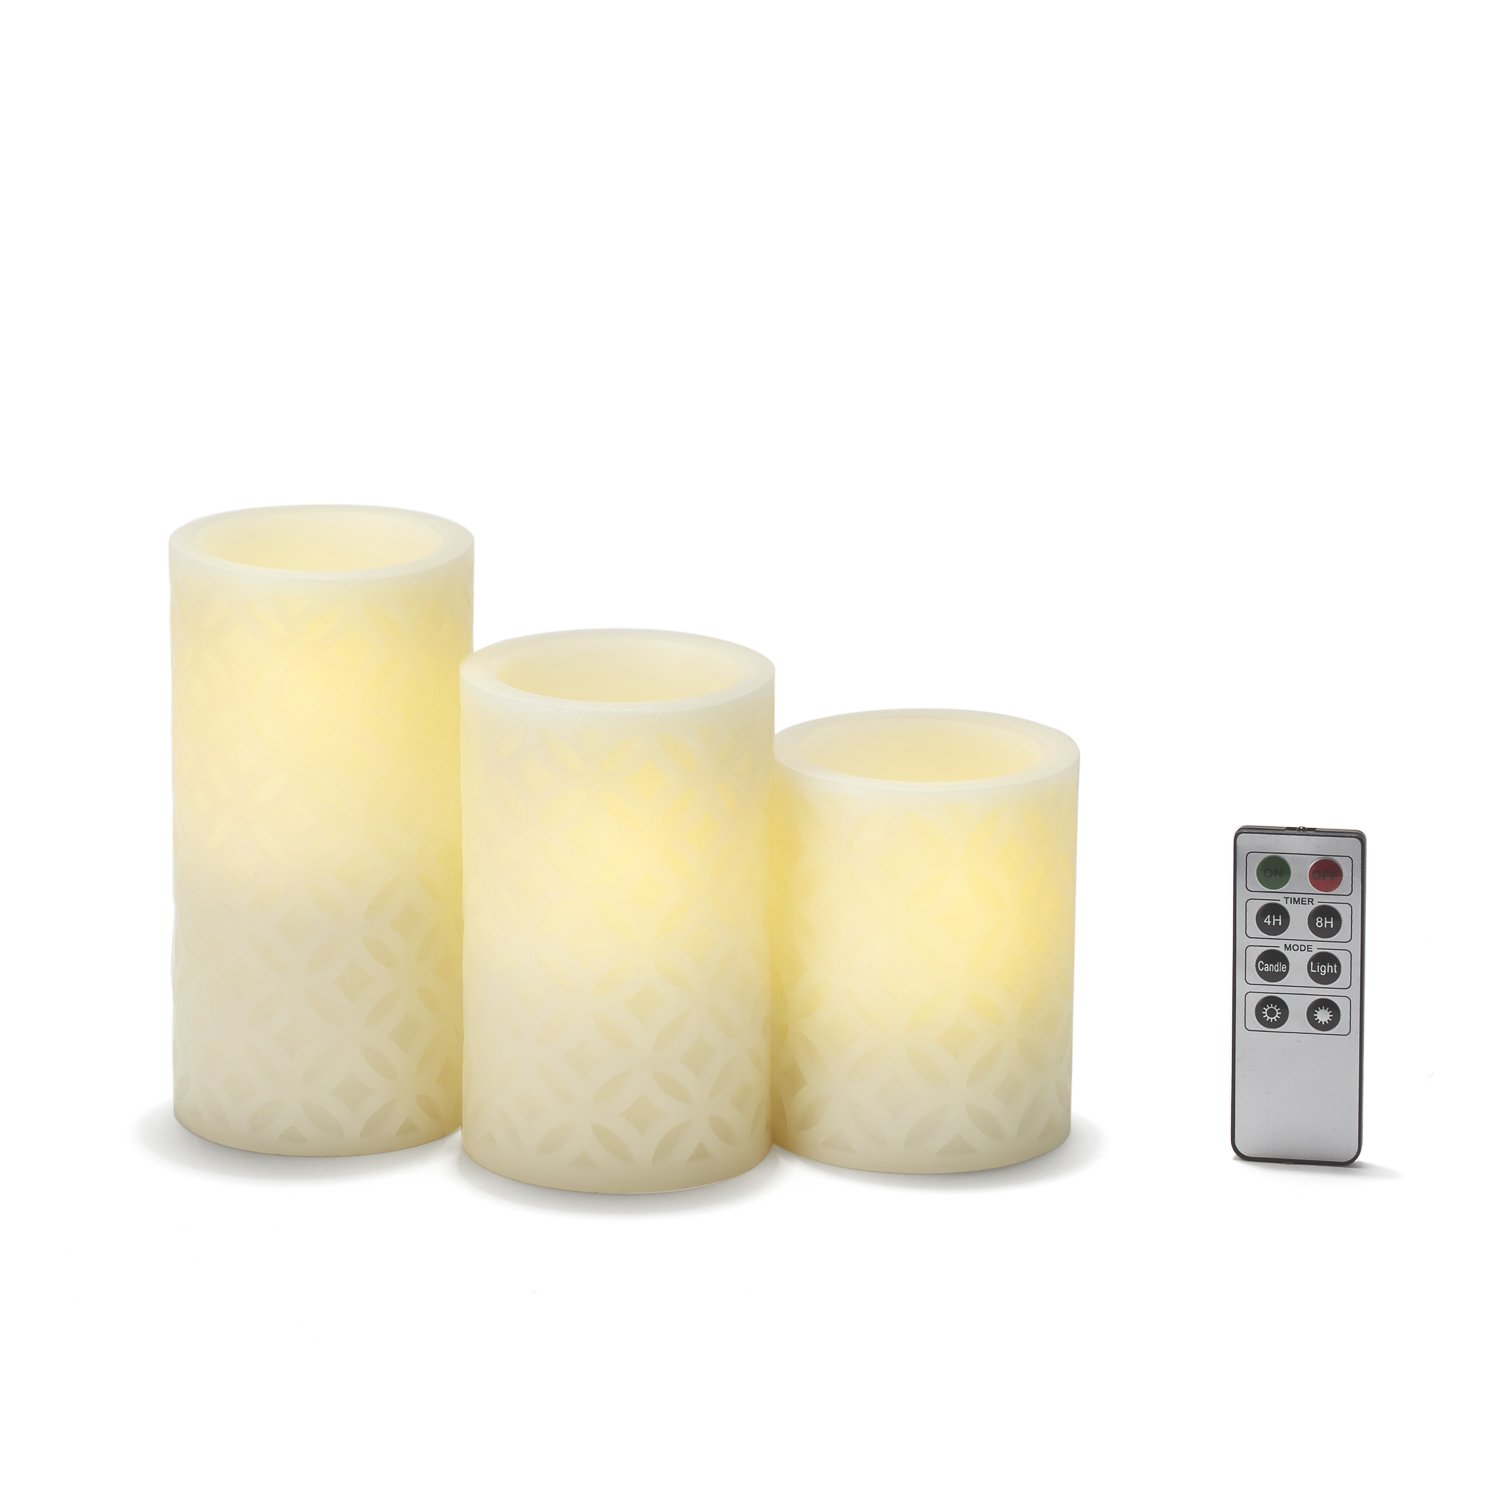 Flameless Pillar Candles with Remote, Ivory Carved Wax Candle Set with Warm White LEDs, Set of 3 - Batteries Included